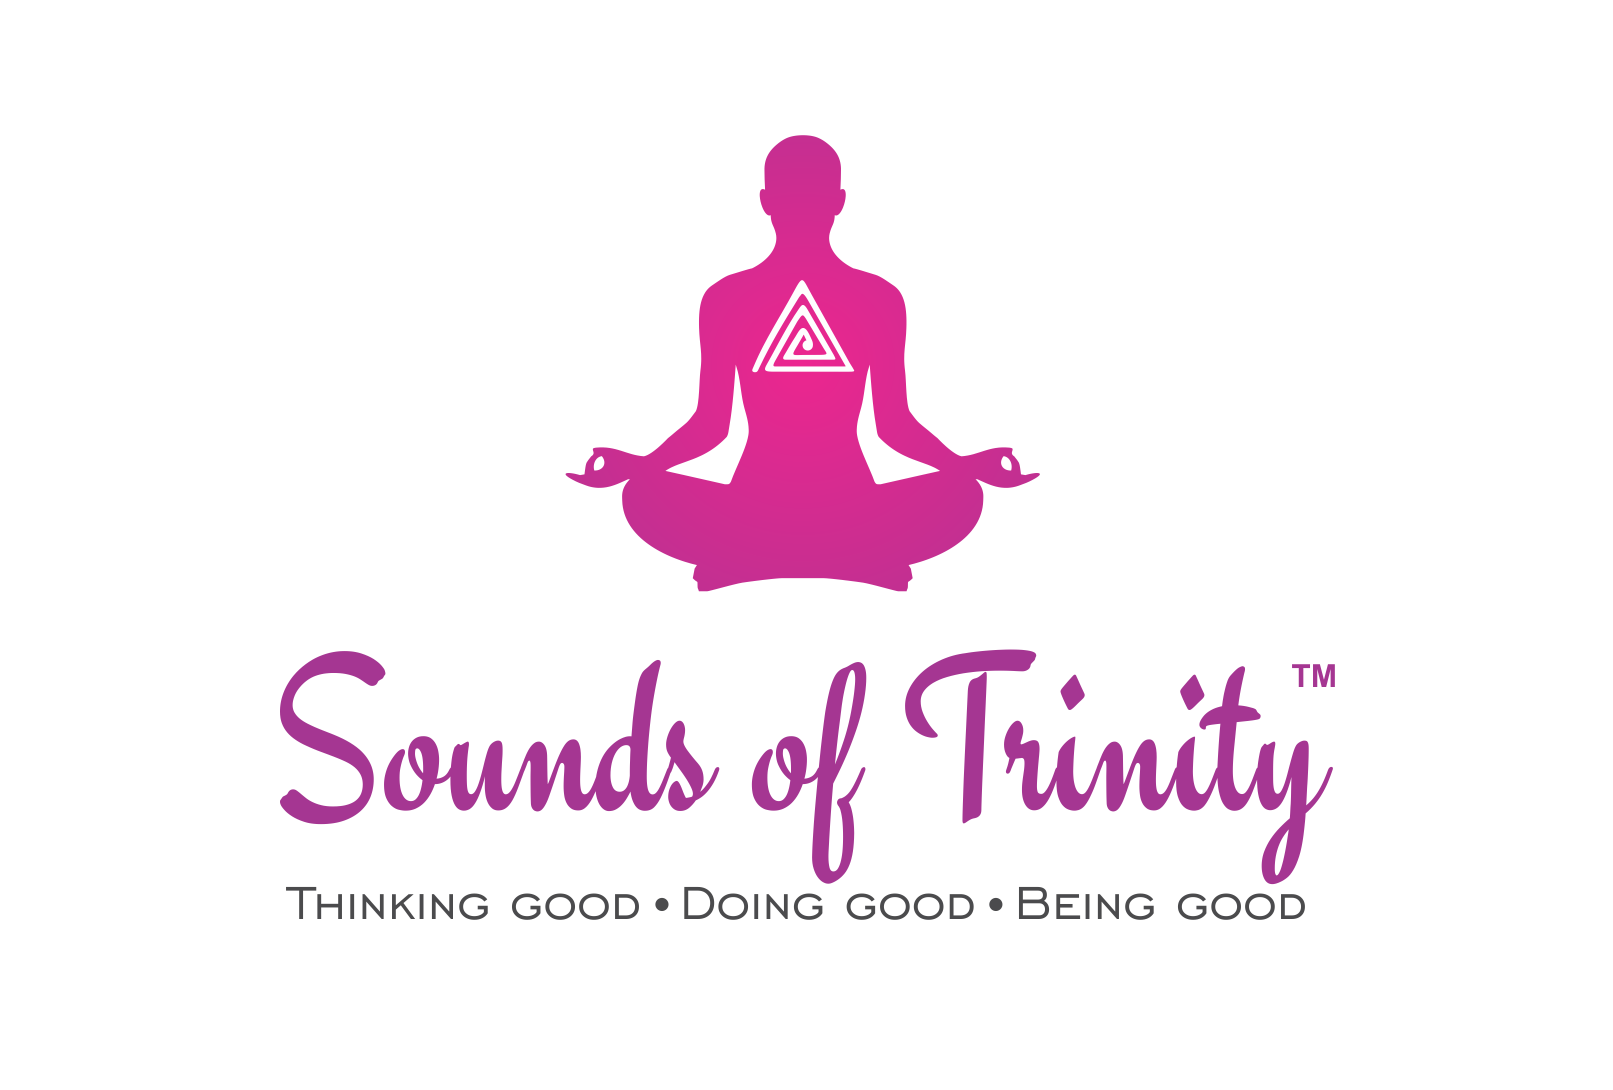 Sounds of Trinity